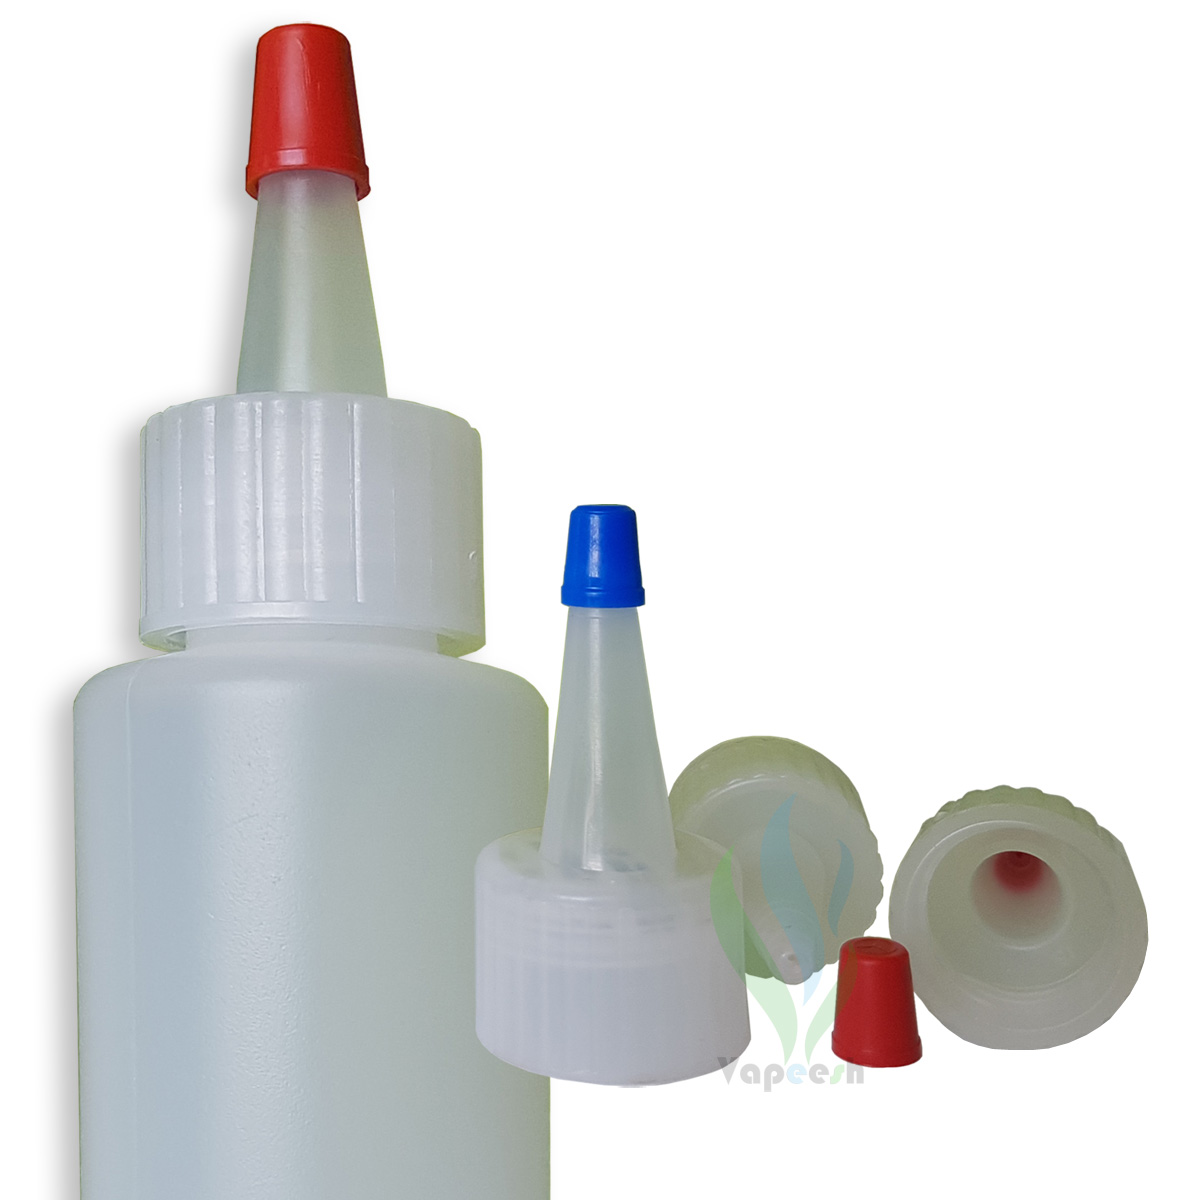 HDPE natural cylinderical bottle with natural yorker closure with red tip cover & 3 natural yorker closures with blue or red tip caps